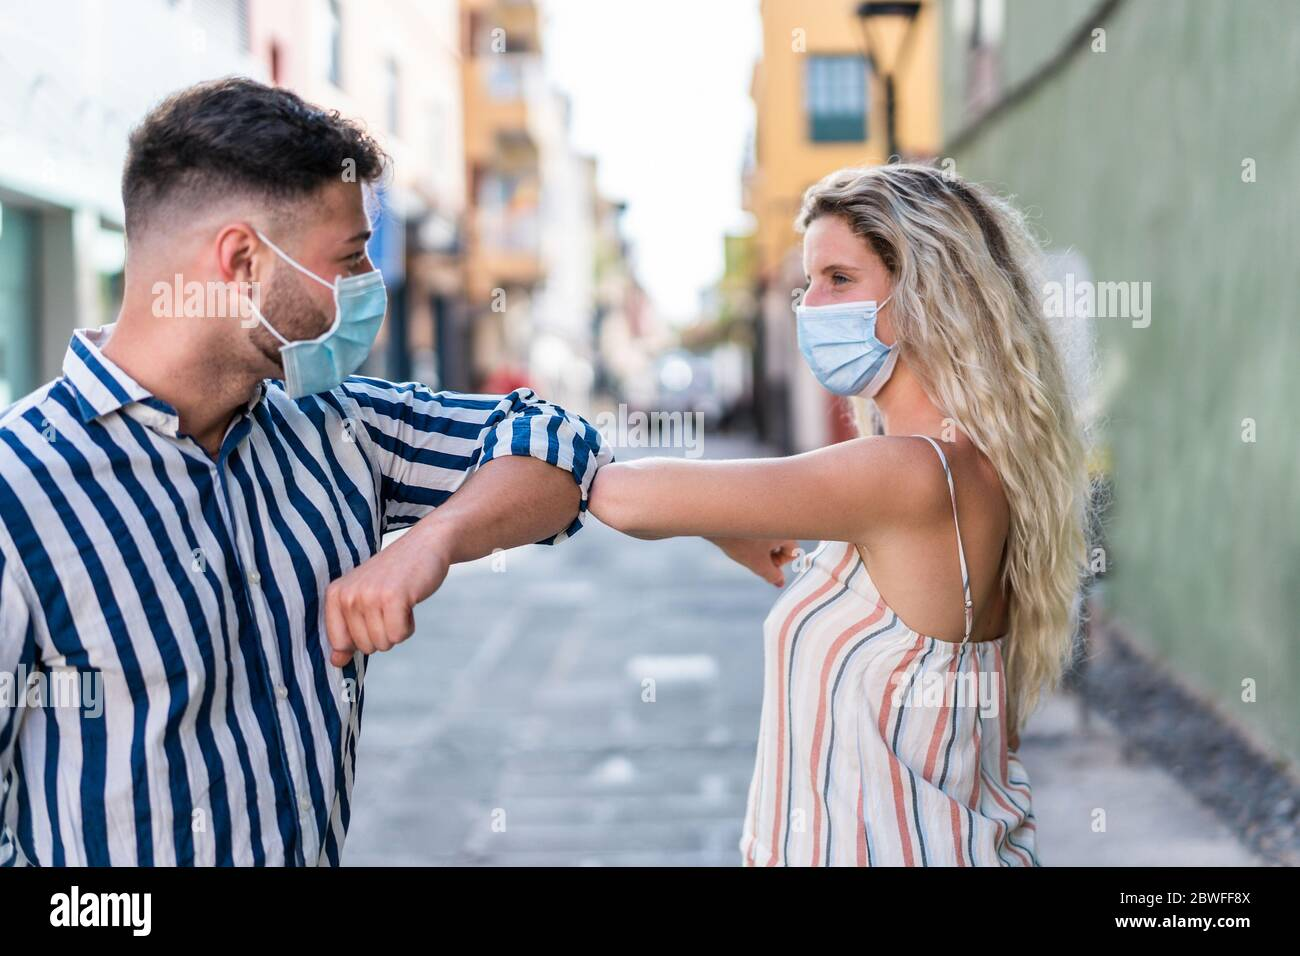 Young people bump their elbows instead of greeting with a hug - Avoid the spread of coronavirus concept - Focus on elbows Stock Photo